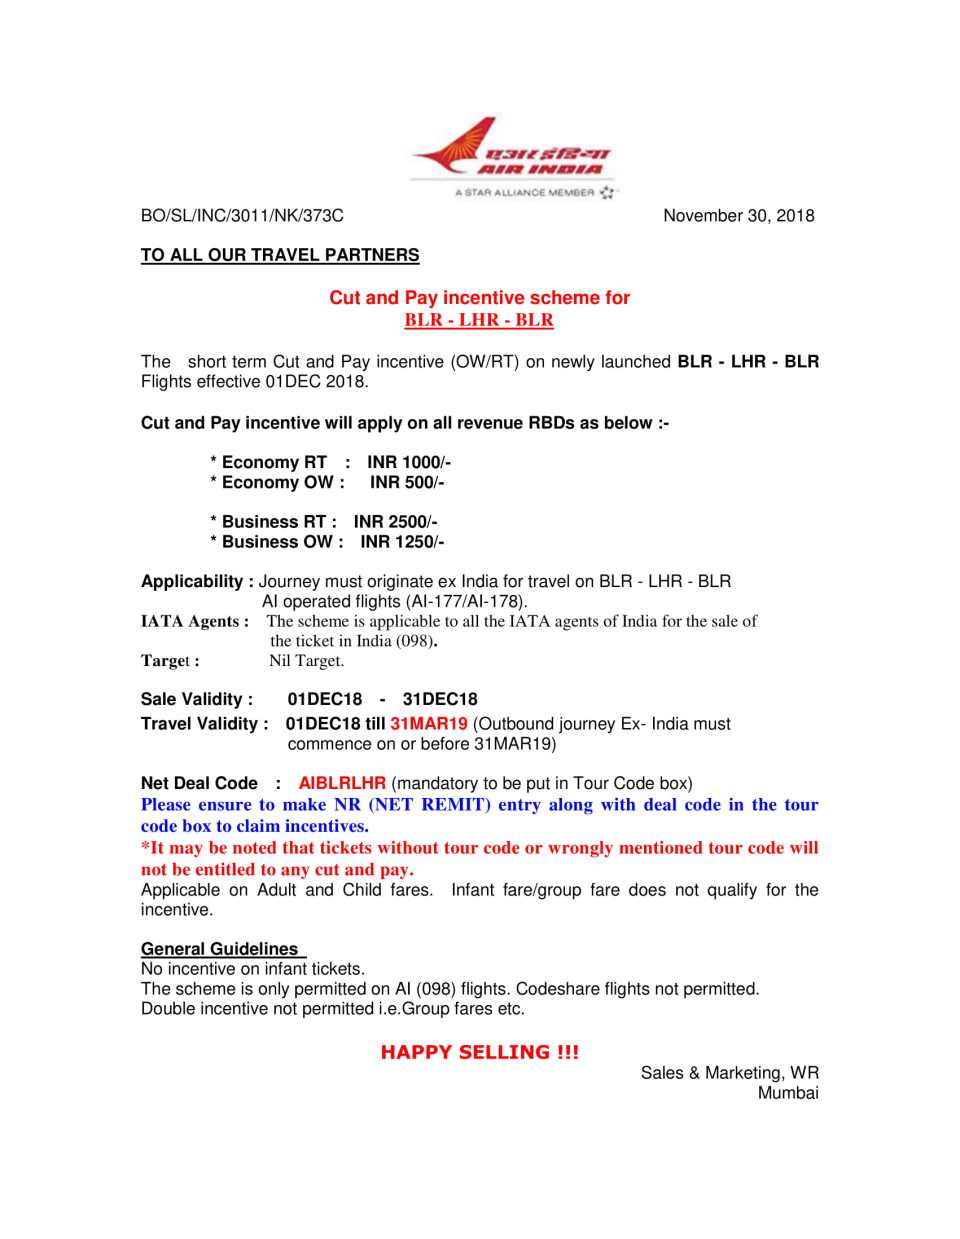 Cut & Pay Inc Scheme for BLR-LHR -BLR (Cir 373C)-1